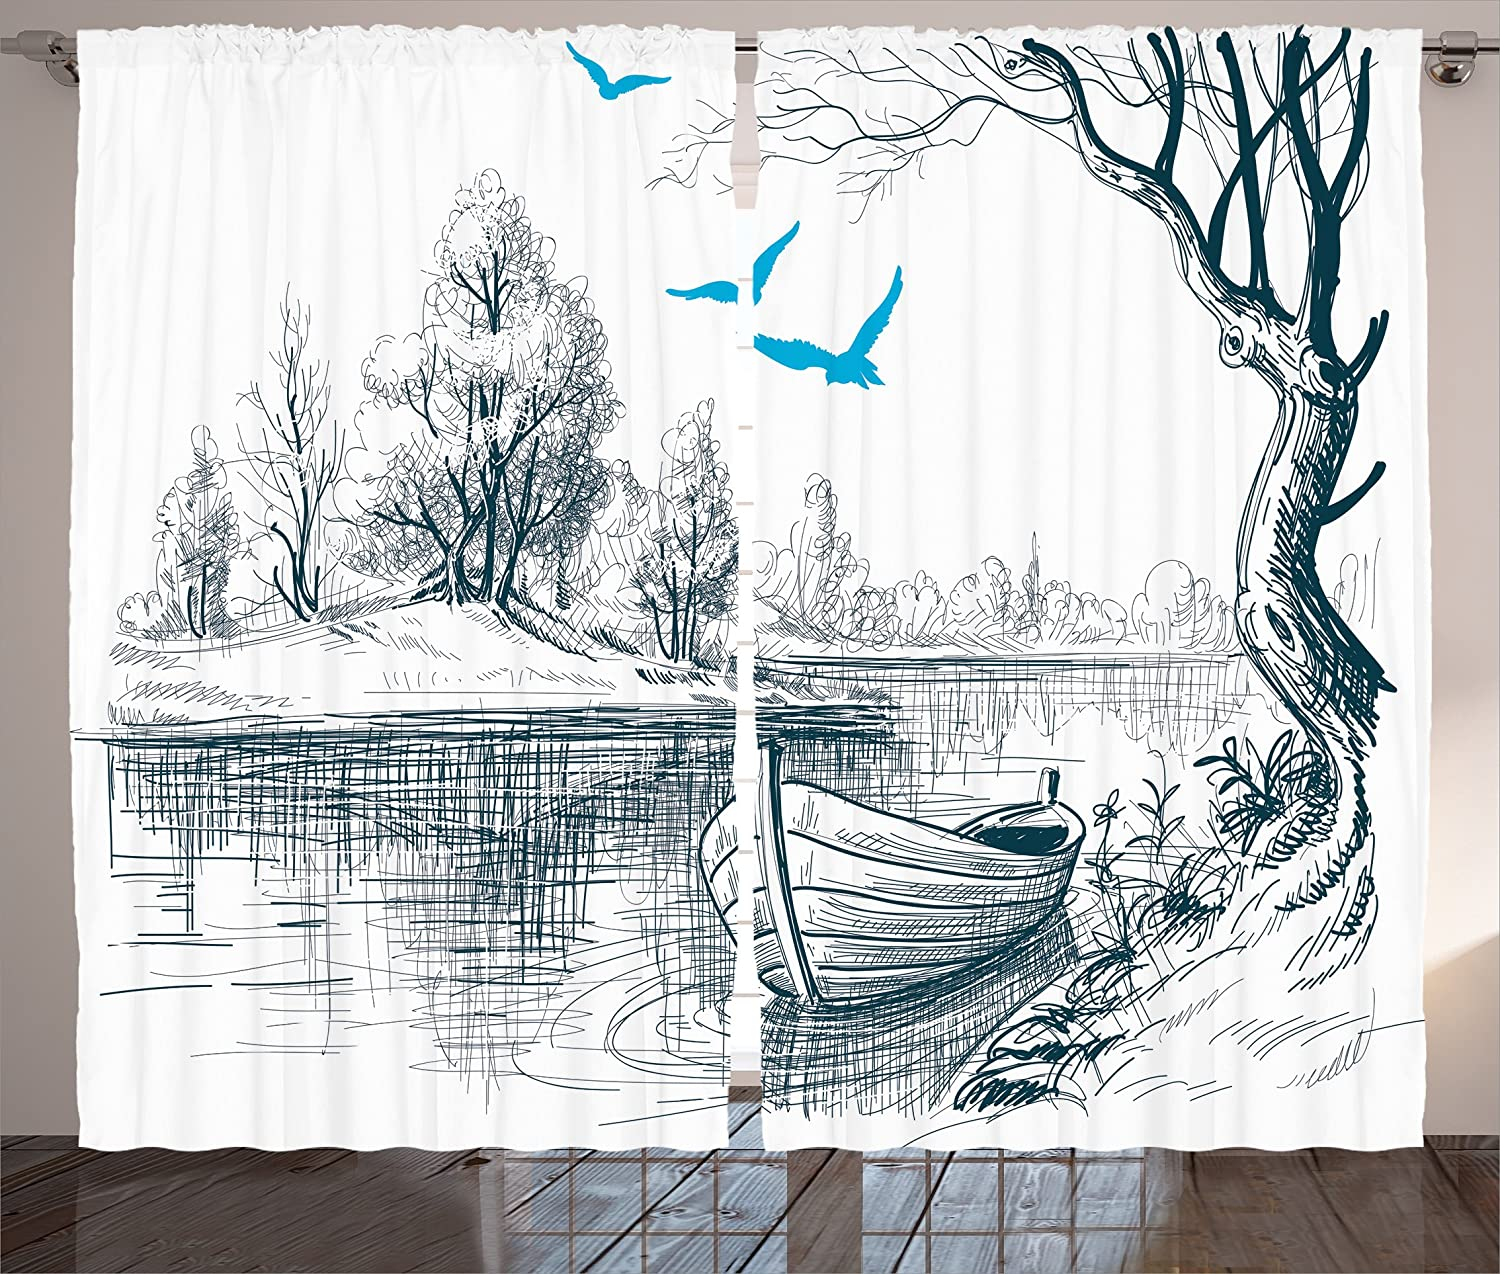 Ambesonne Lake House Decor Curtains, Boat on Calm River Trees Birds Twigs Sketch Drawing Clipart Water Minimalistic, Living Room Bedroom Decor, 2 Panel Set, 108 W X 90 L inches, Petrol Blue White